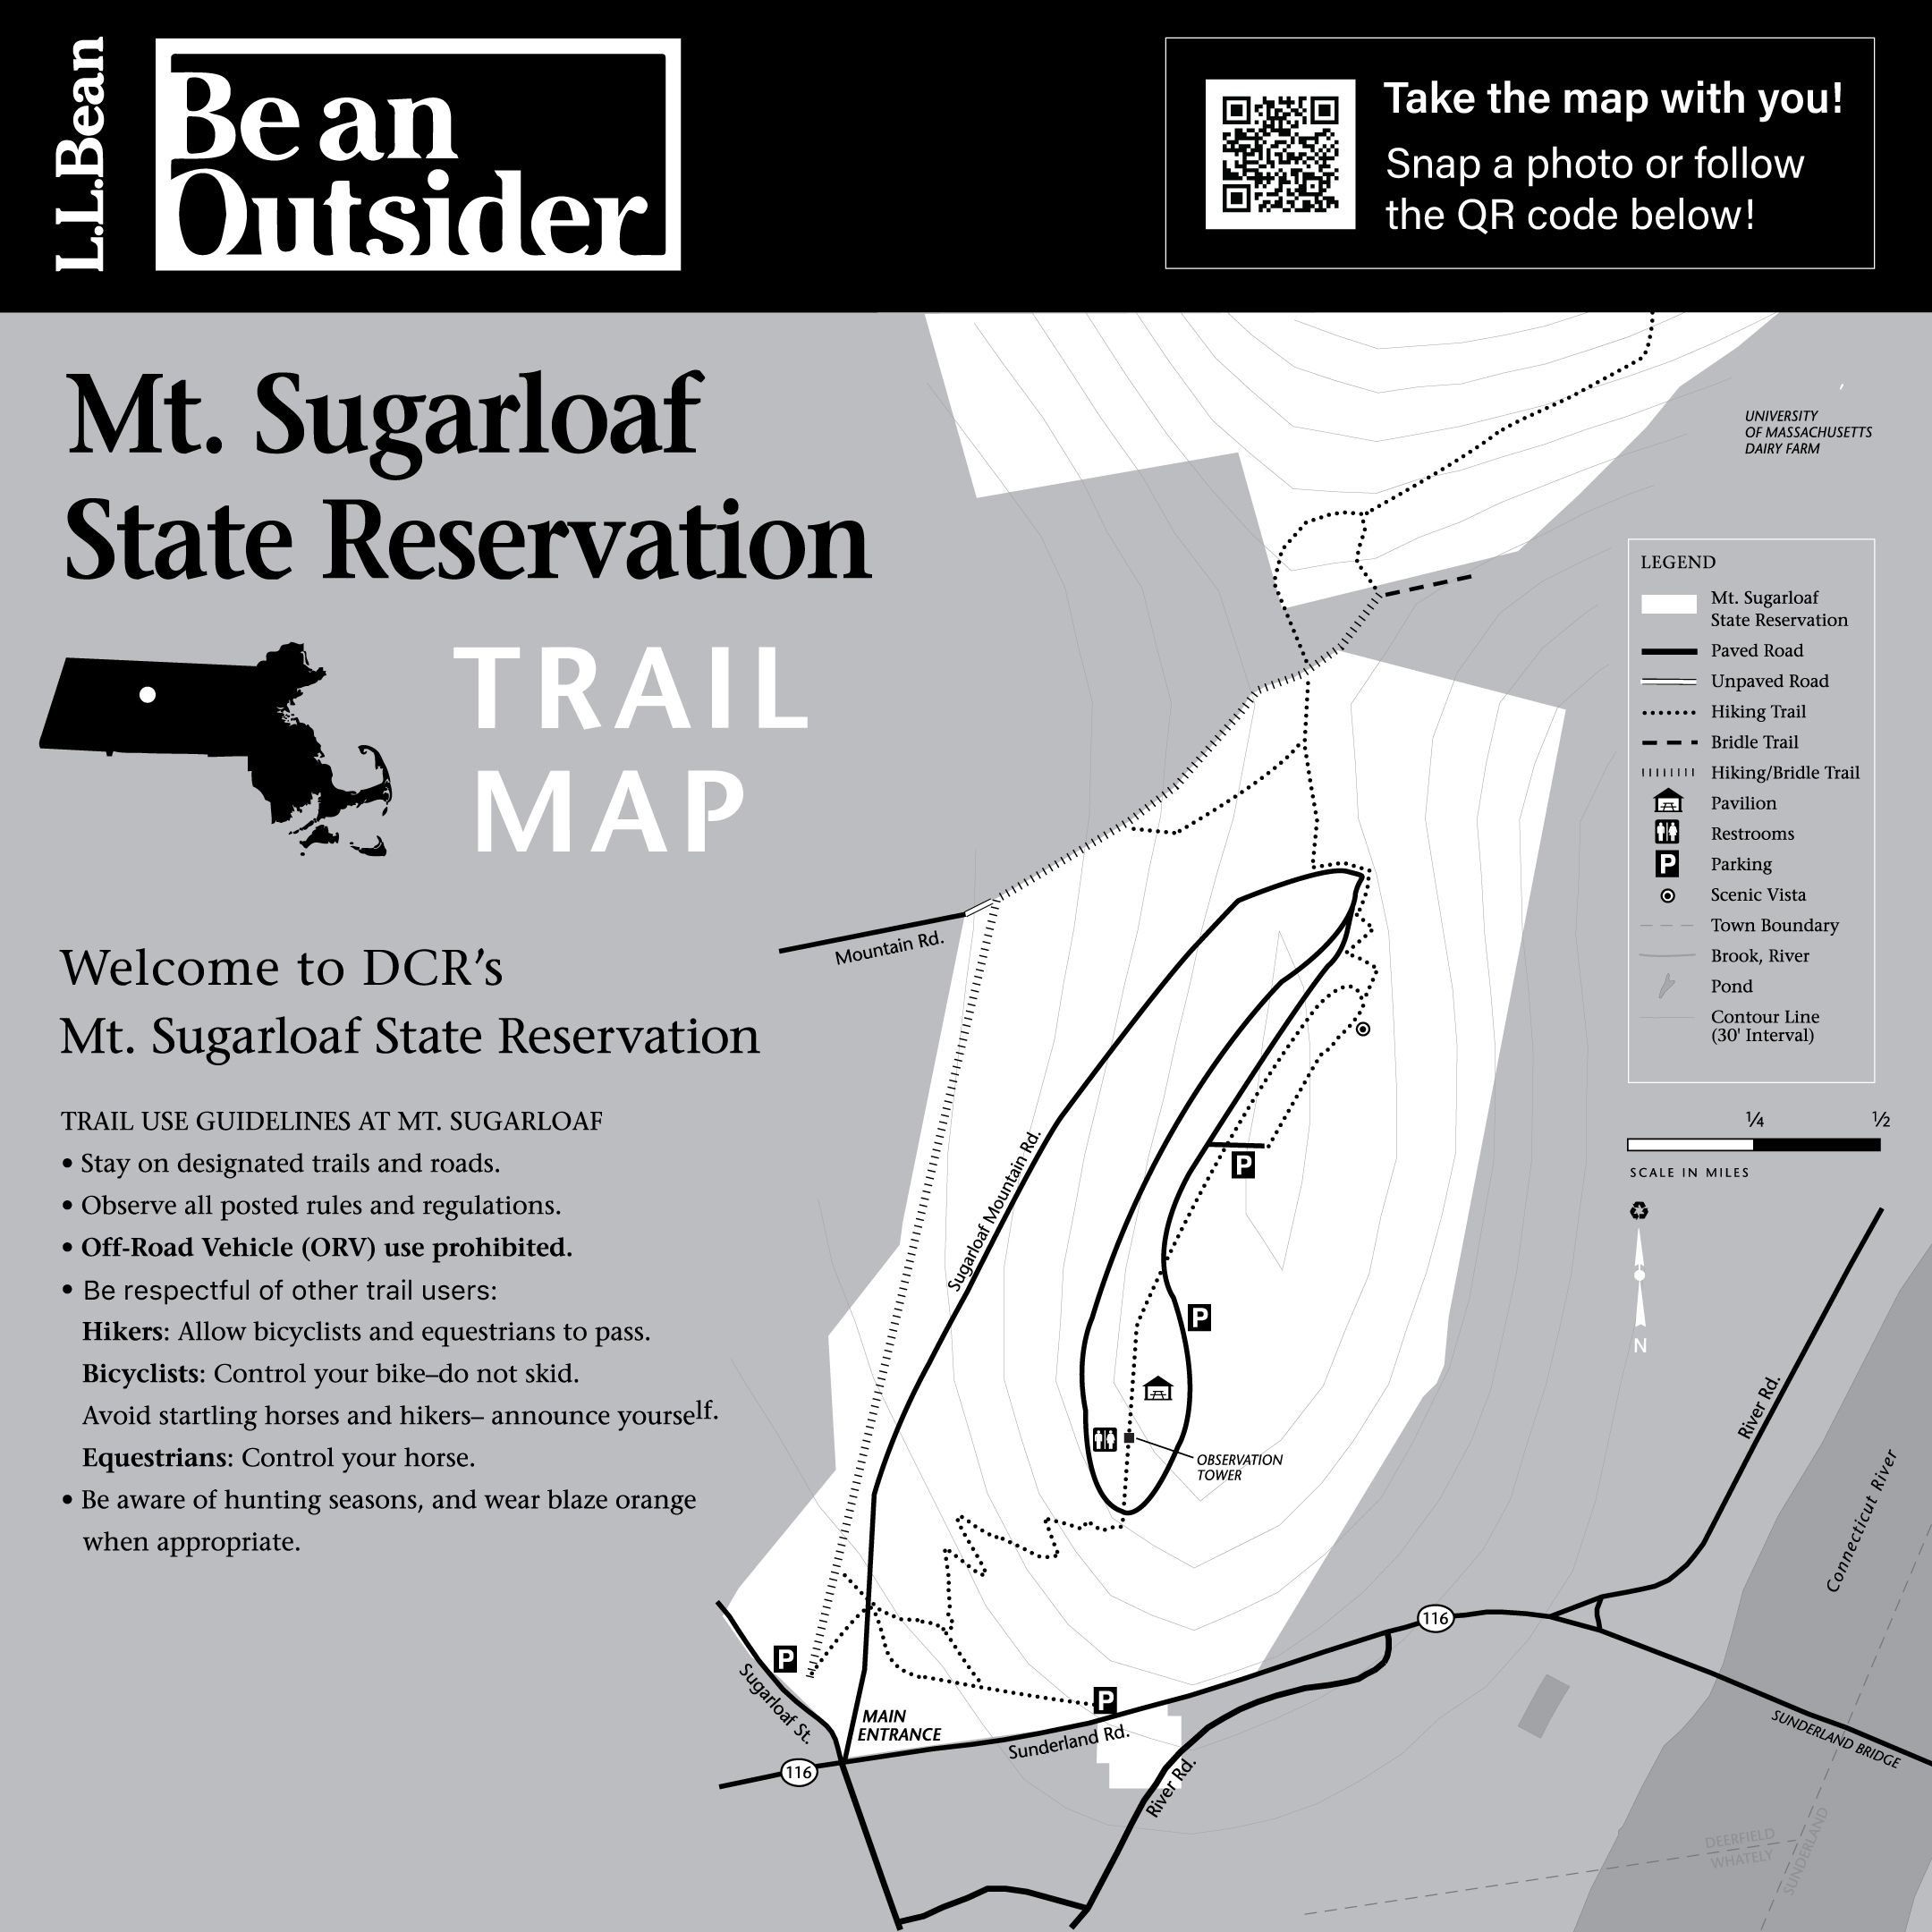 An advertisement from the Seaport L.L. Bean brick-and-mortar store shows trail maps for Mt. Sugarloaf State Reservation.